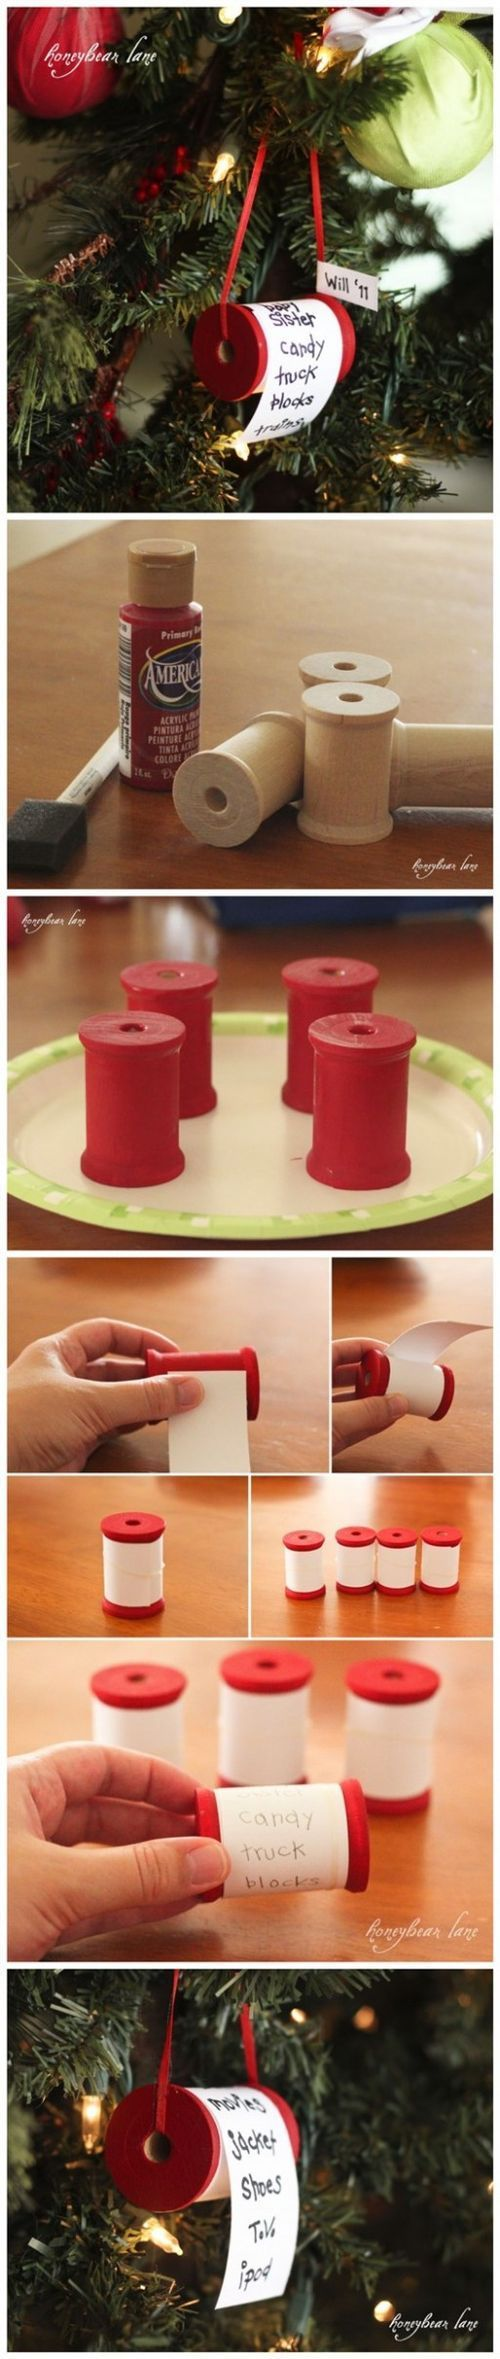 How to make X'mas wish list ornament step by step DIY tutorial instructions / How To Instructions on imgfave